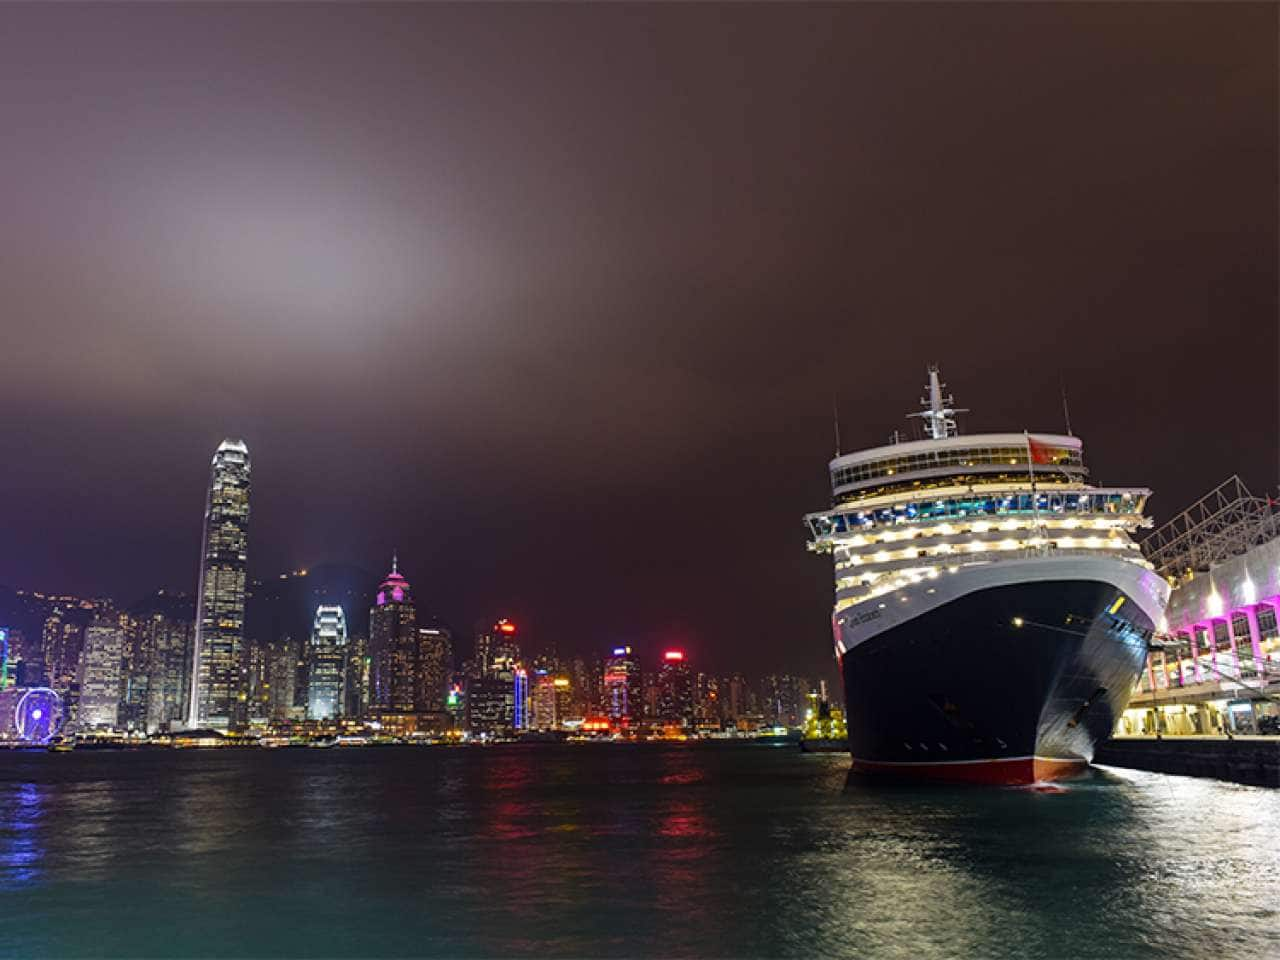 Cunard Cruise Line 180th Anniversary Fleet-wide Sale on Sailings (Travel July - May 2022)